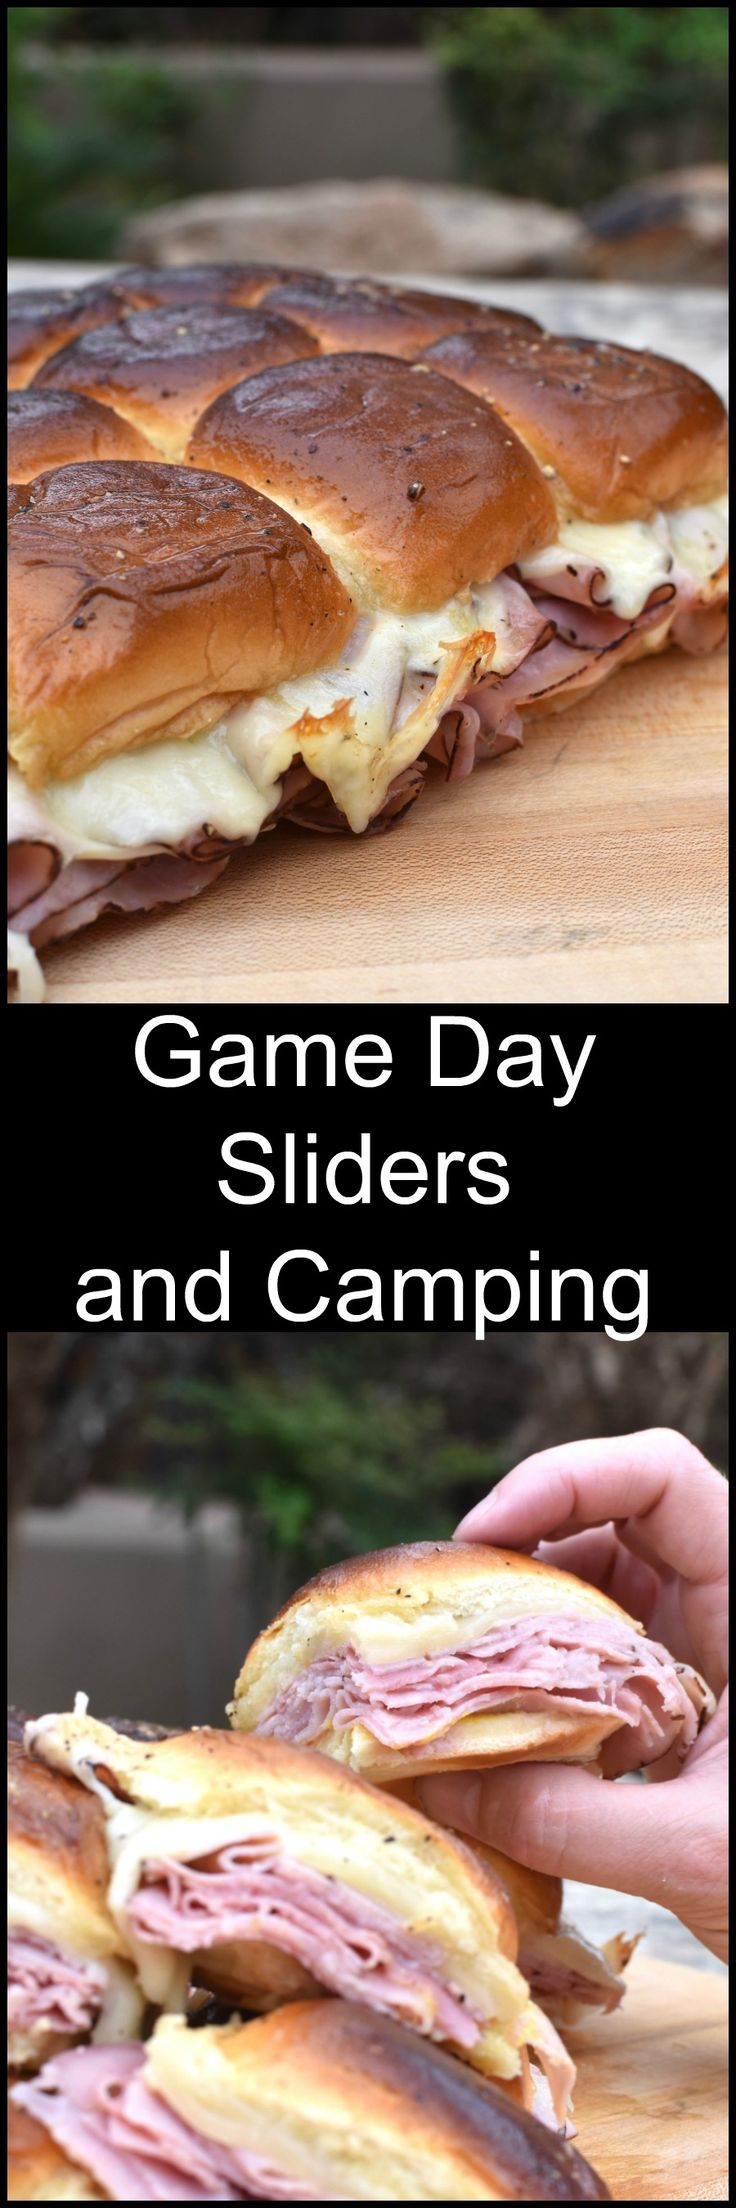 Game Day Hot Ham and Cheese Sliders - perfect whether you're sitting at home or enjoying a Camping weekend! So easy!!